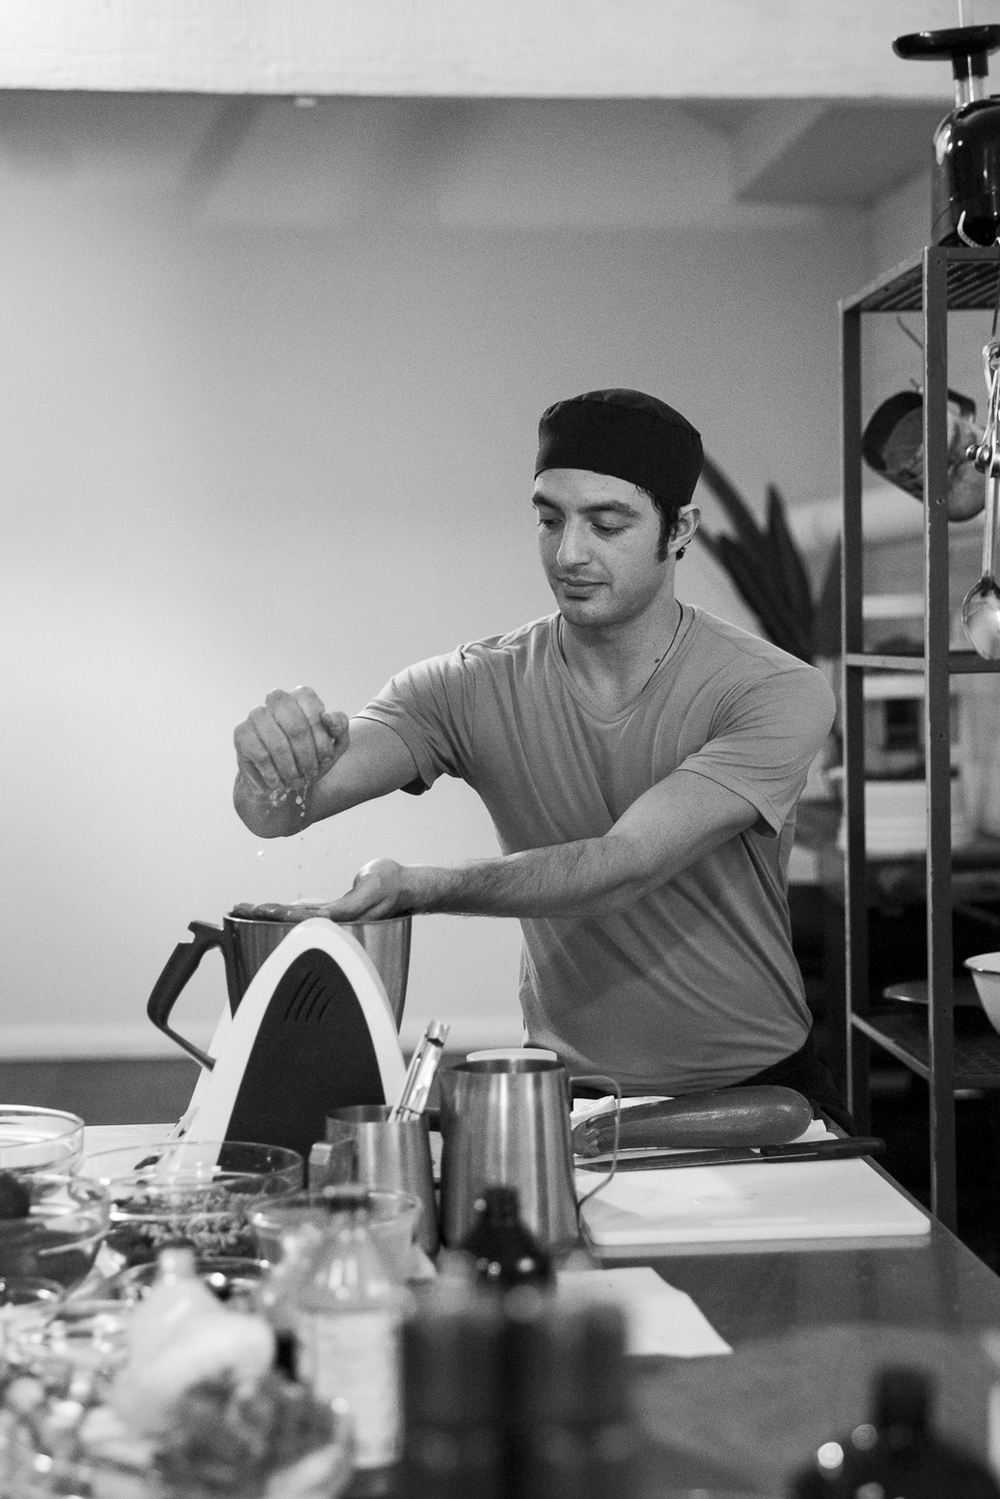 TheRawKitchen_Workshop-35-2.jpg